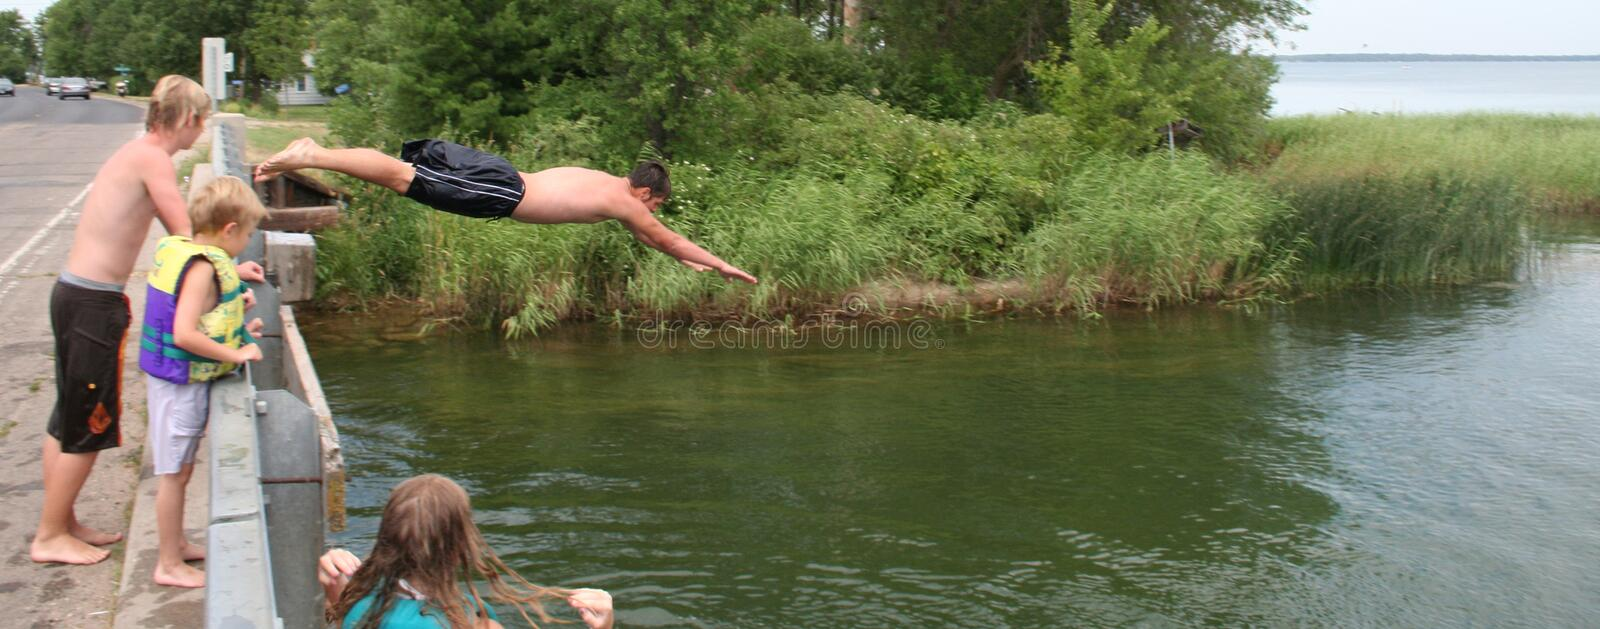 If all your friends jumped off a bridge... Action shot of a bridge diver. Teenage boy mid-dive off of a bridge into a river with three other kids watching stock image